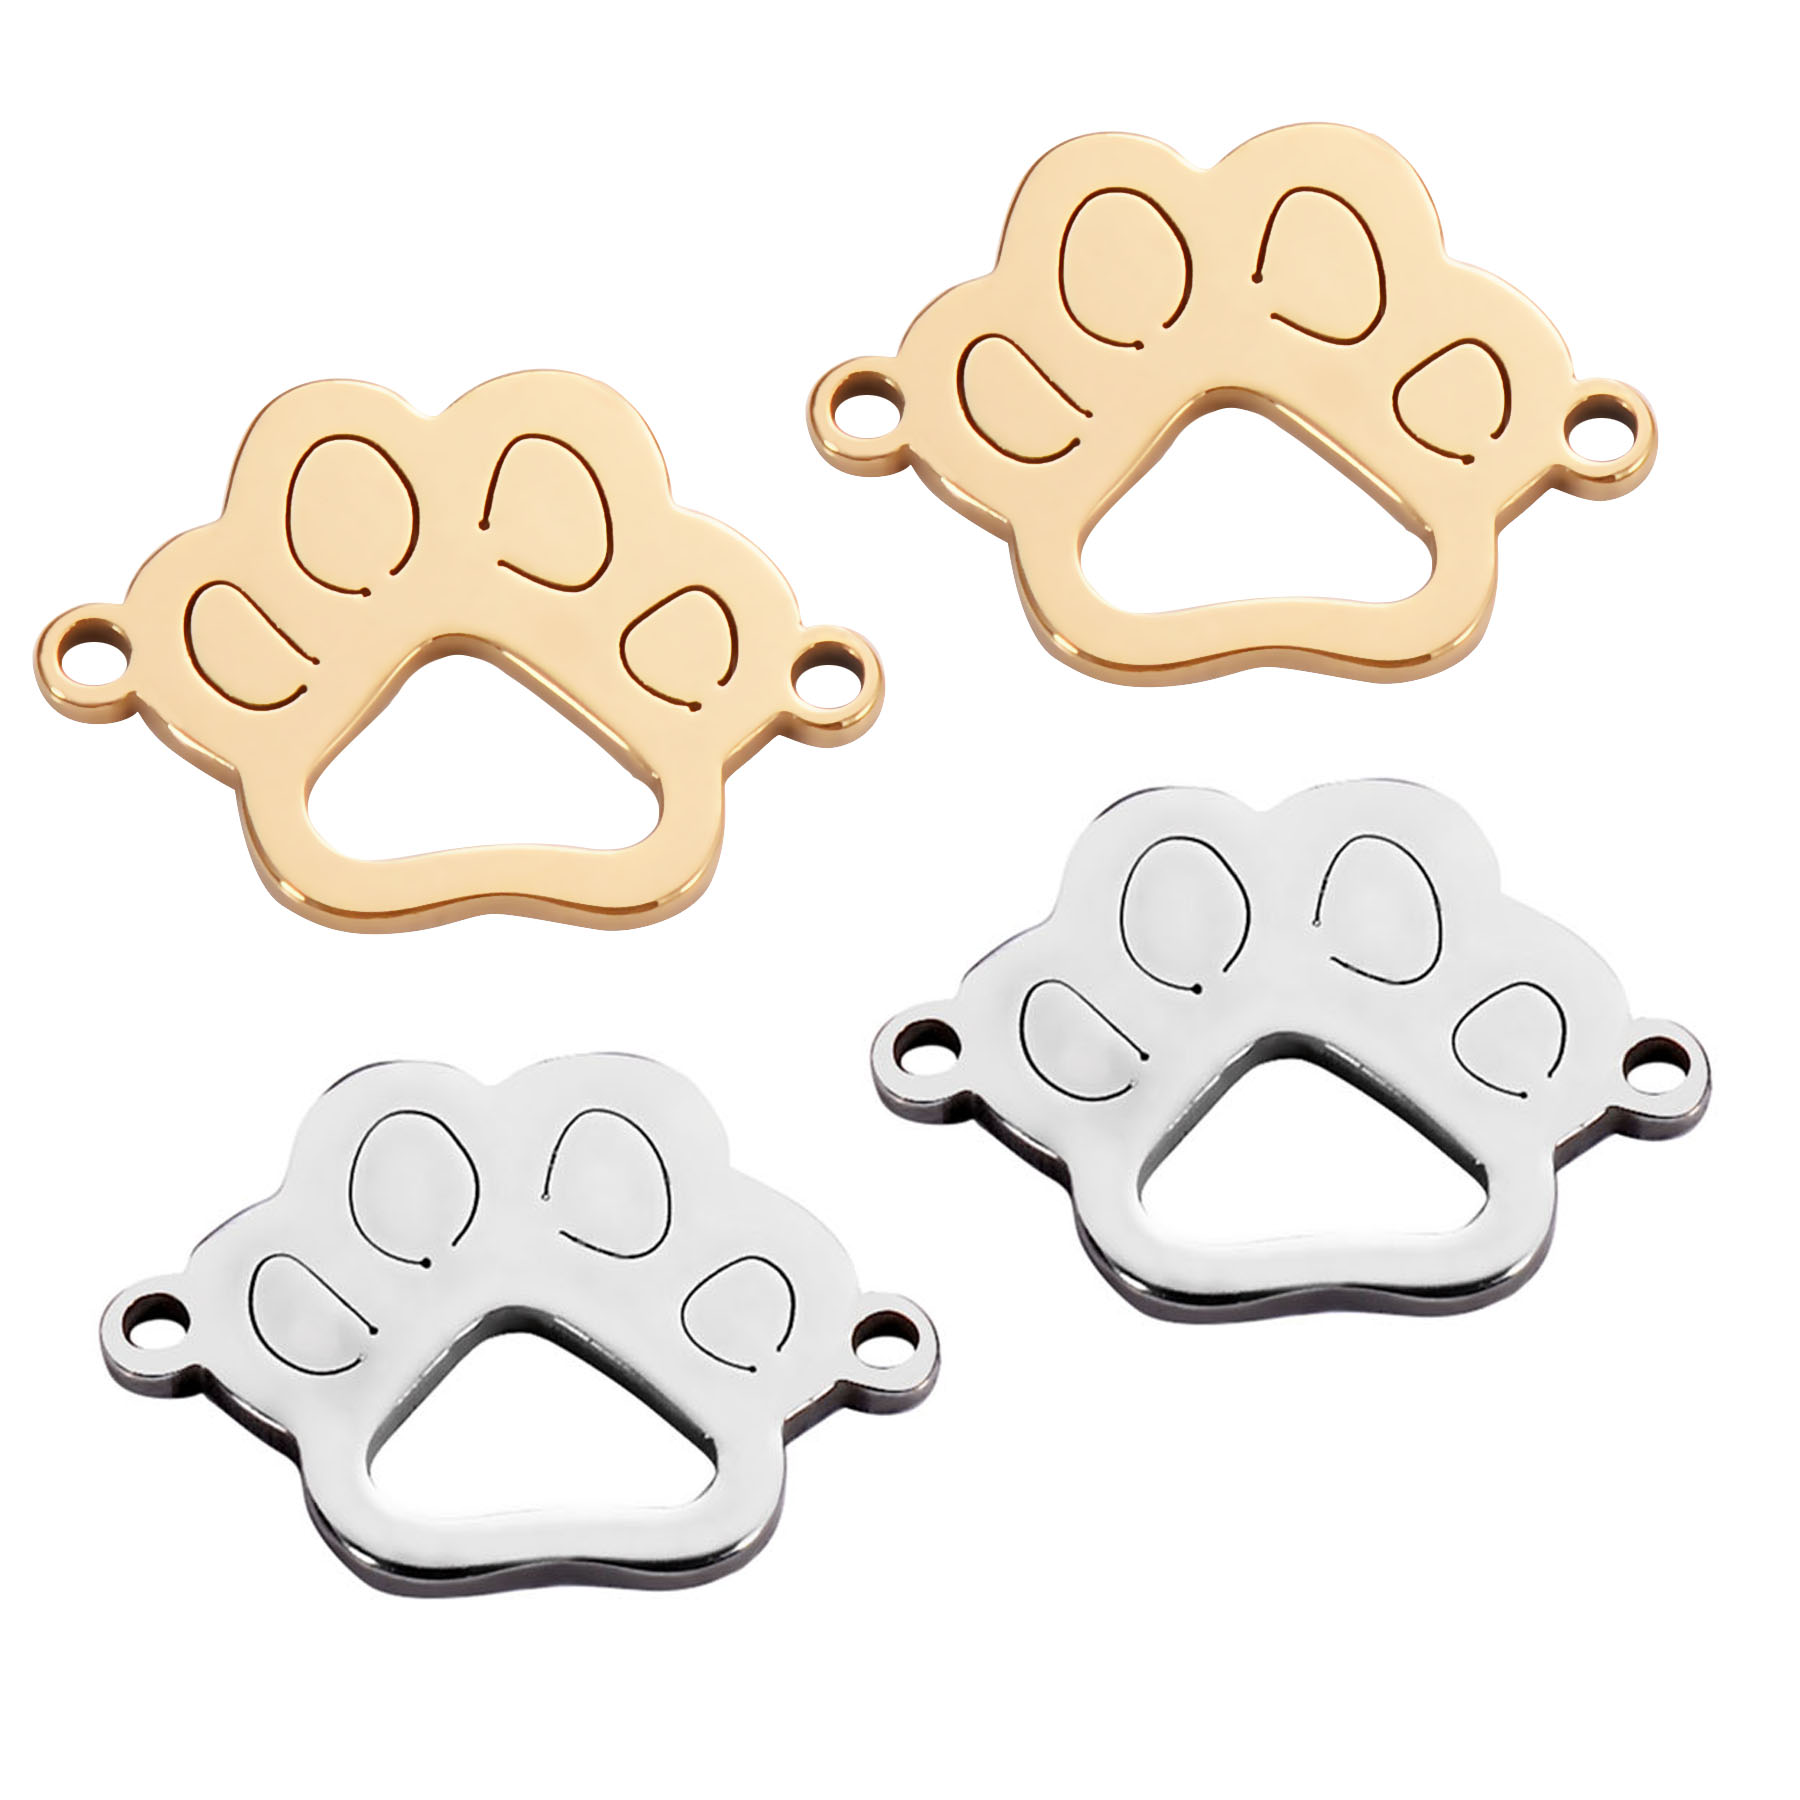 50pcs/lot Stainless Steel Charm Connector Dog Pet Paw Silver Gold Tone Pendants Jewelry Making DIY For Men Women